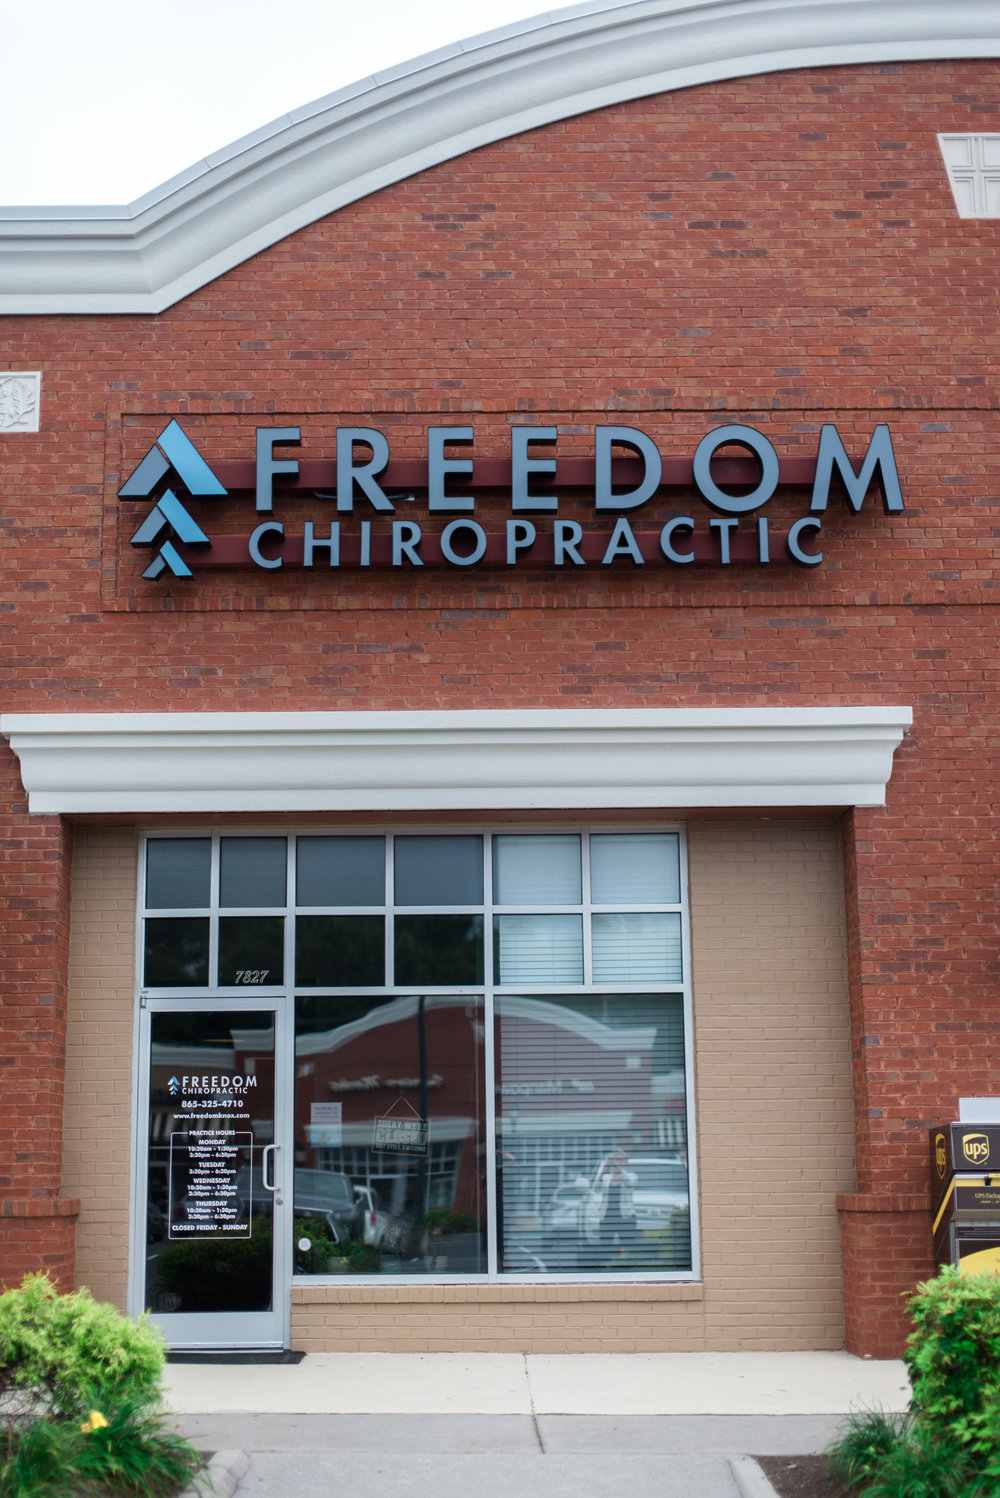 I Love Local Knoxville, TN Freedom Chiropractic-6221.jpg